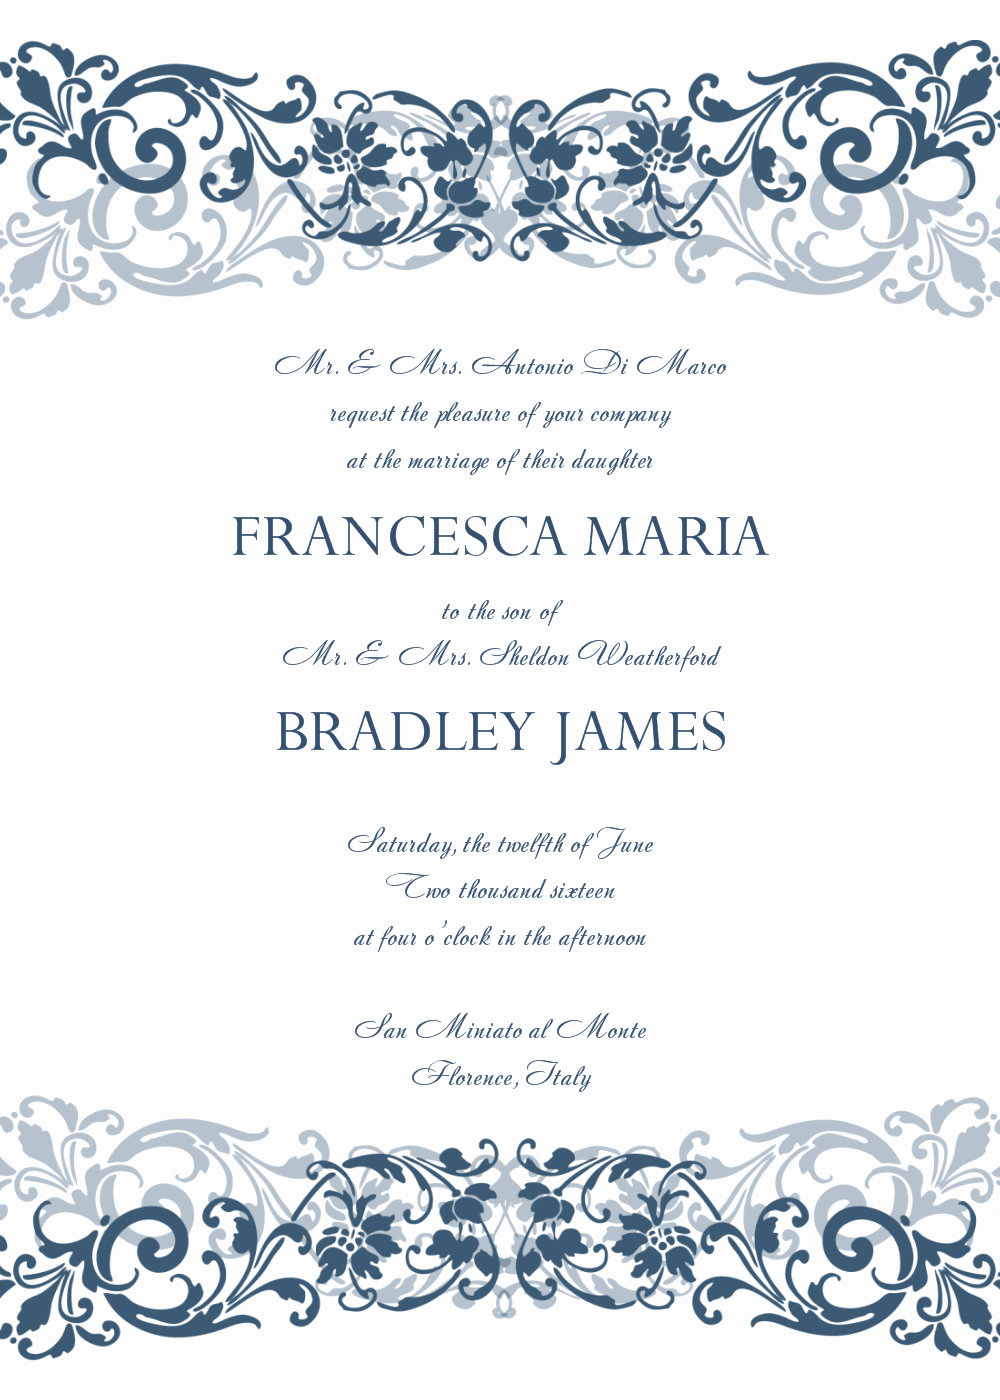 Word Template for Invitations Unique 8 Free Wedding Invitation Templates Excel Pdf formats